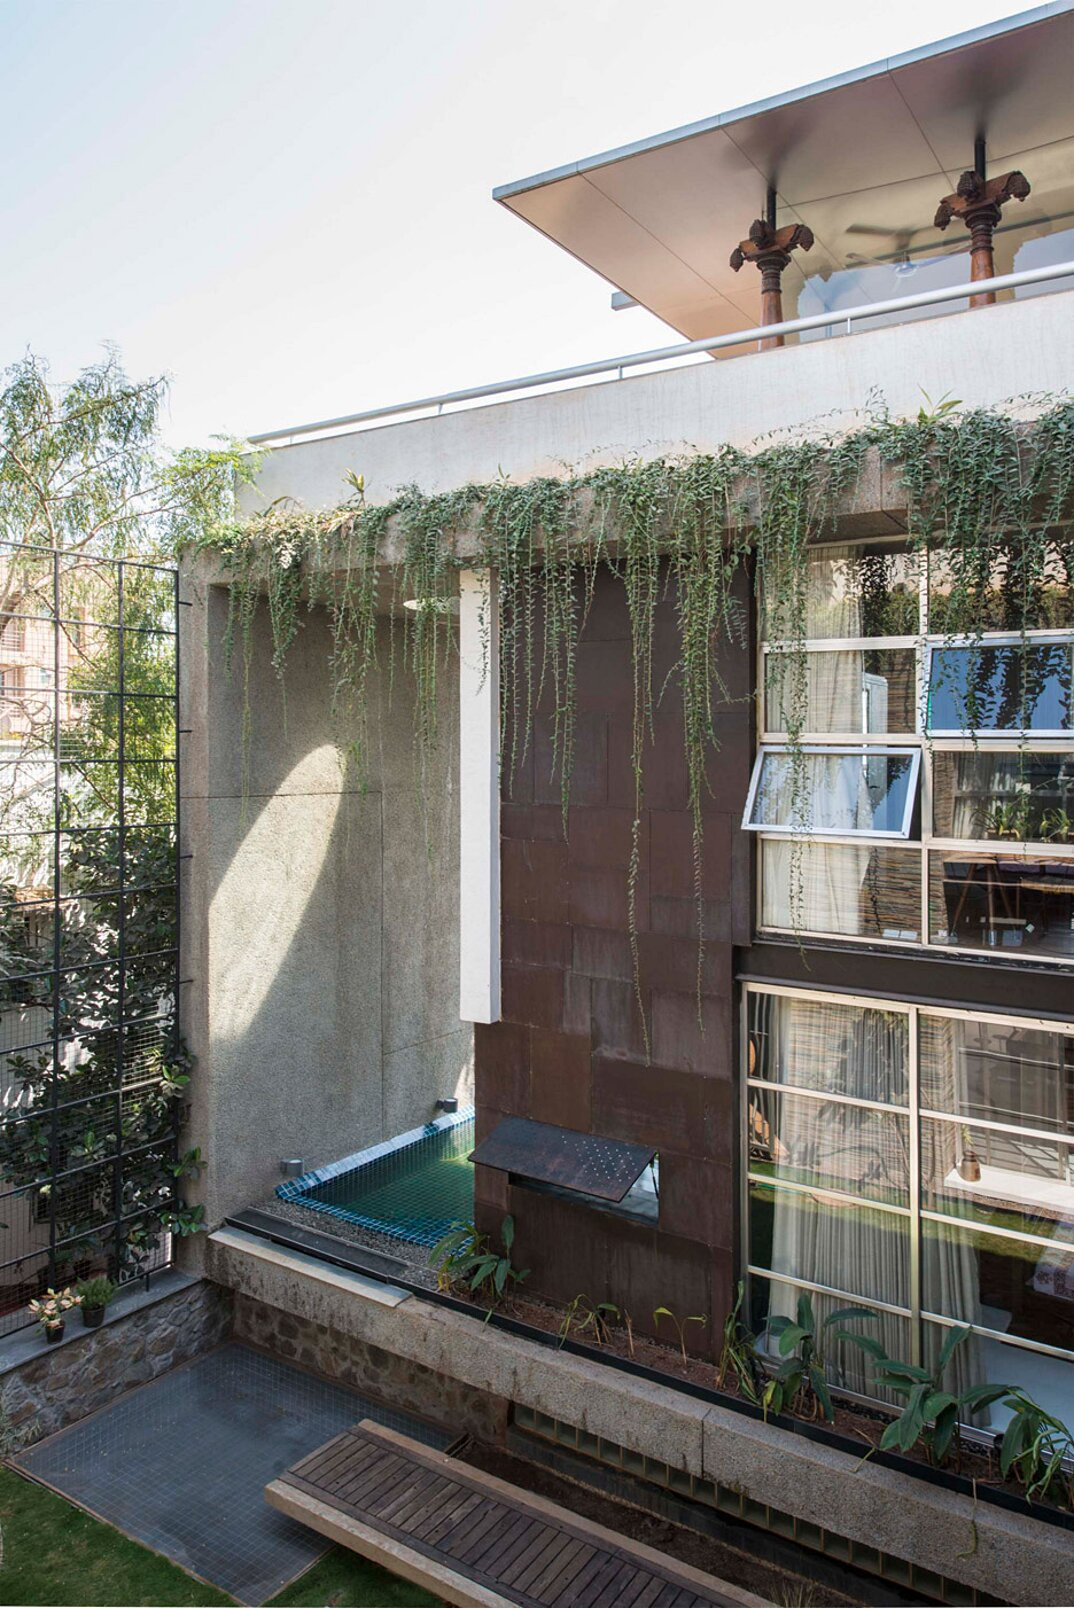 edificio-materiali-riciclati-architettura-sostenibile-mumbai-sps-architects-28